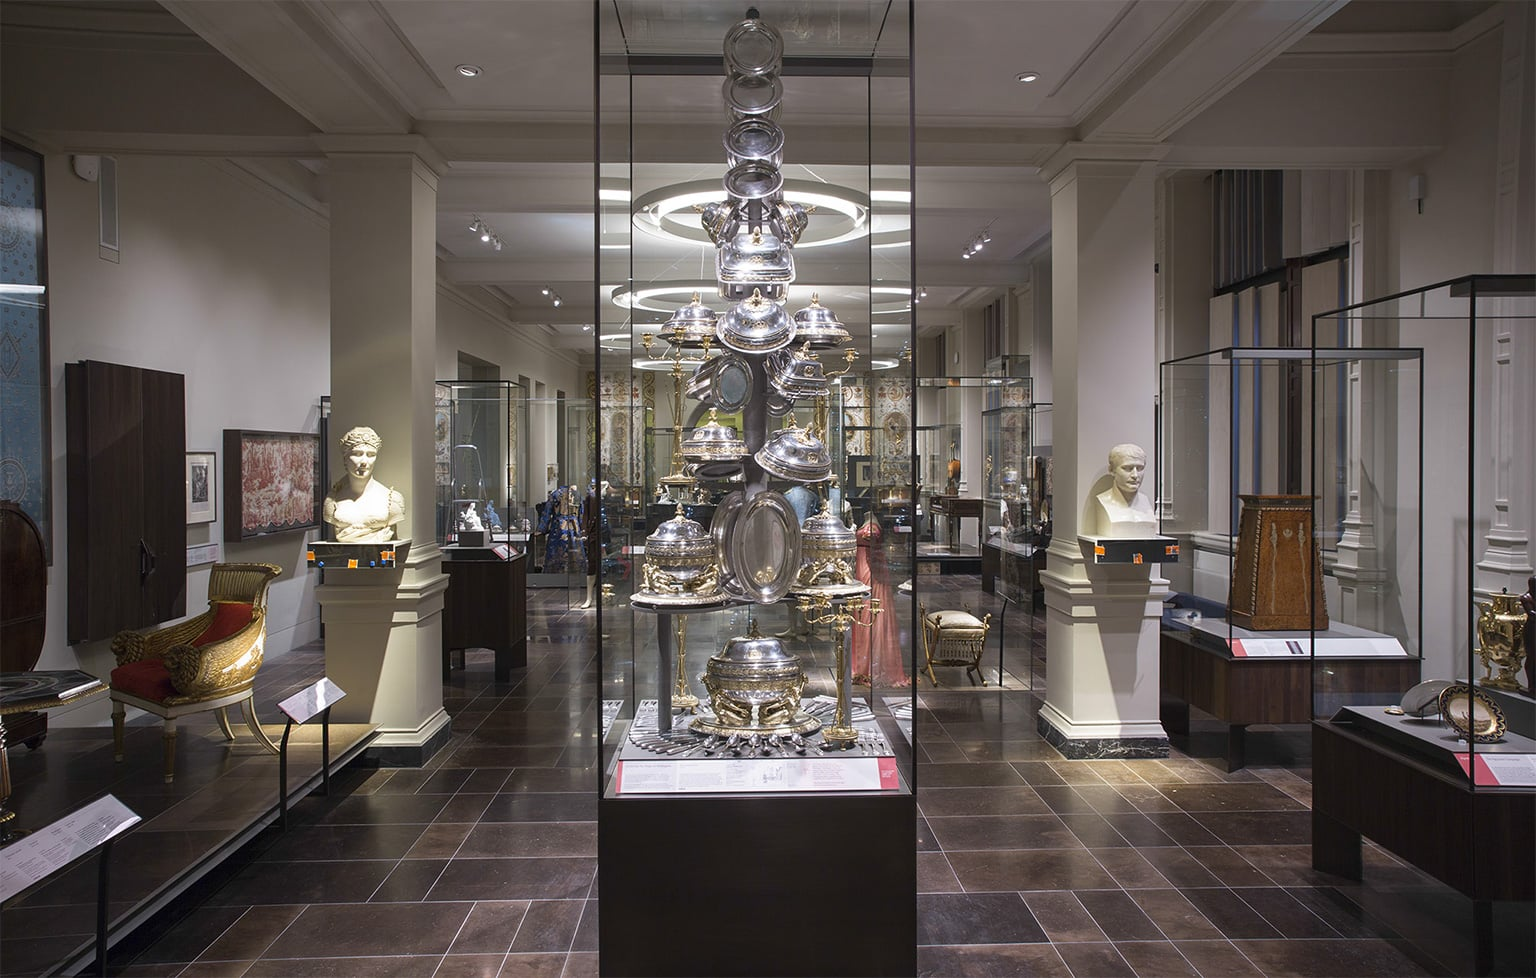 Victoria and Albert Museum (V&A) London - Art Fund on